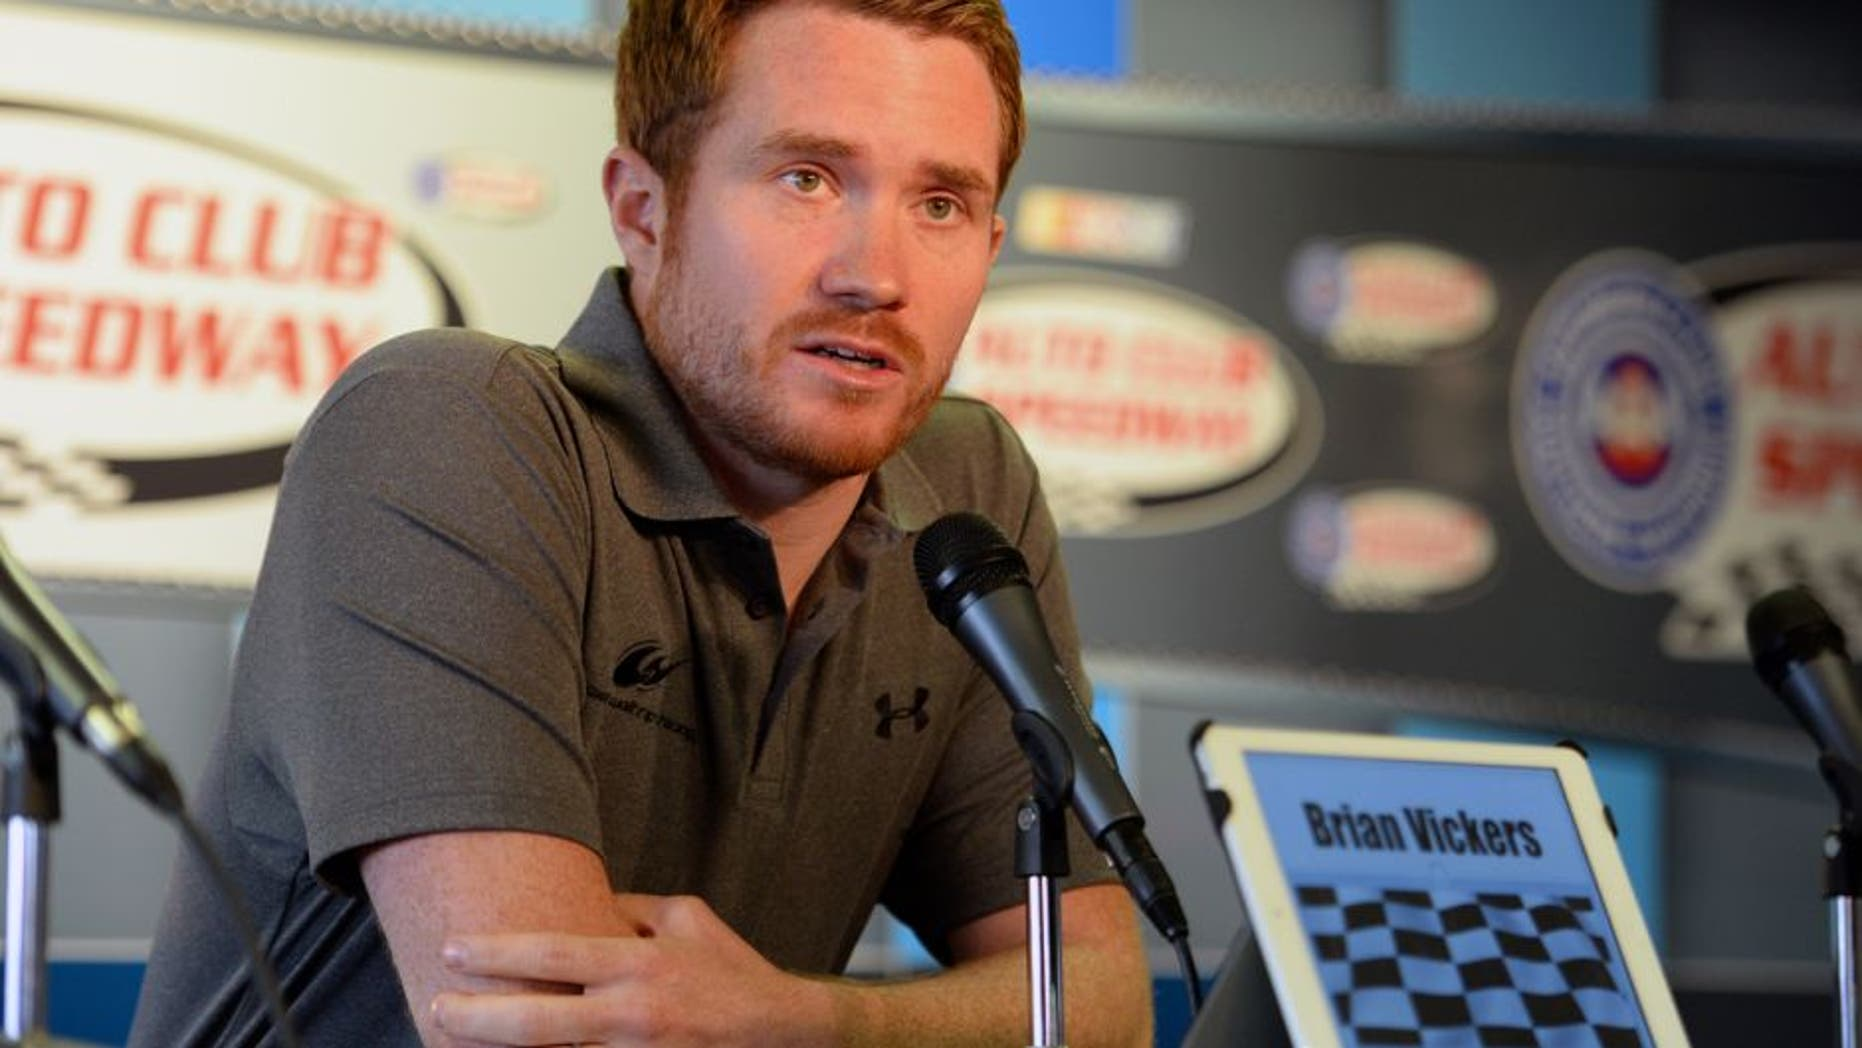 FONTANA, CA - MARCH 22: Brian Vickers, driver of the Michael Waltrip Racing Toyota, answers questions from media during a press conference before the NASCAR Sprint Cup Series Auto Club 400 at Auto Club Speedway on March 22, 2015 in Fontana, California. Vickers was forced to withdraw from competition due to blood clots. (Photo by Robert Laberge/Getty Images)